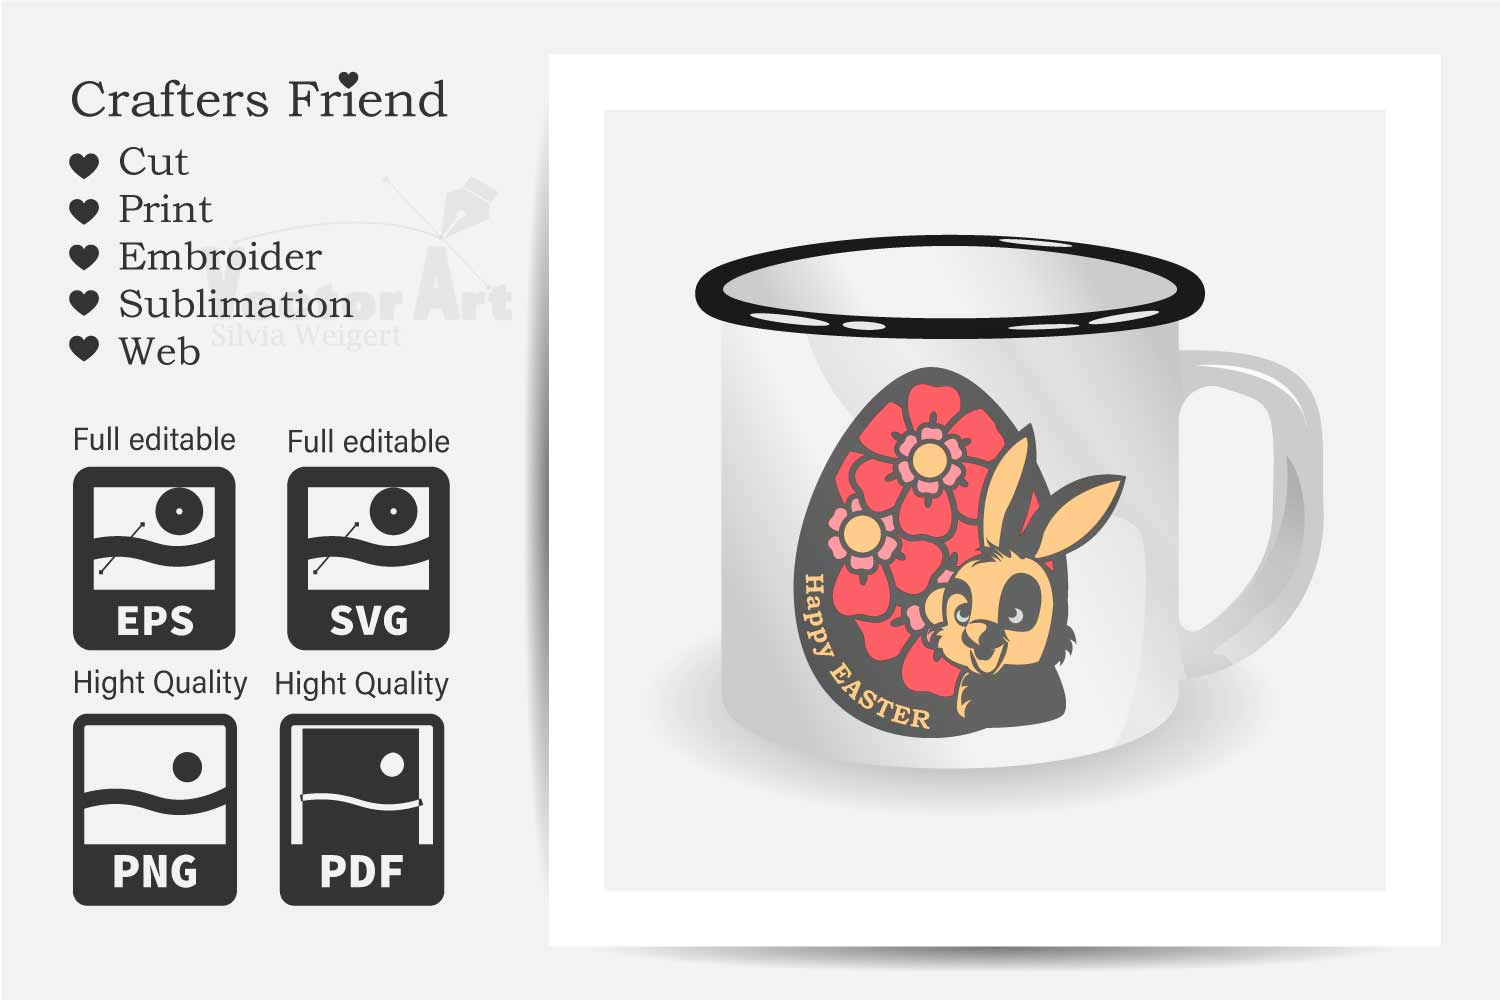 Happy Easter - Bunny in Egg with Flower - Print and Cut example image 2